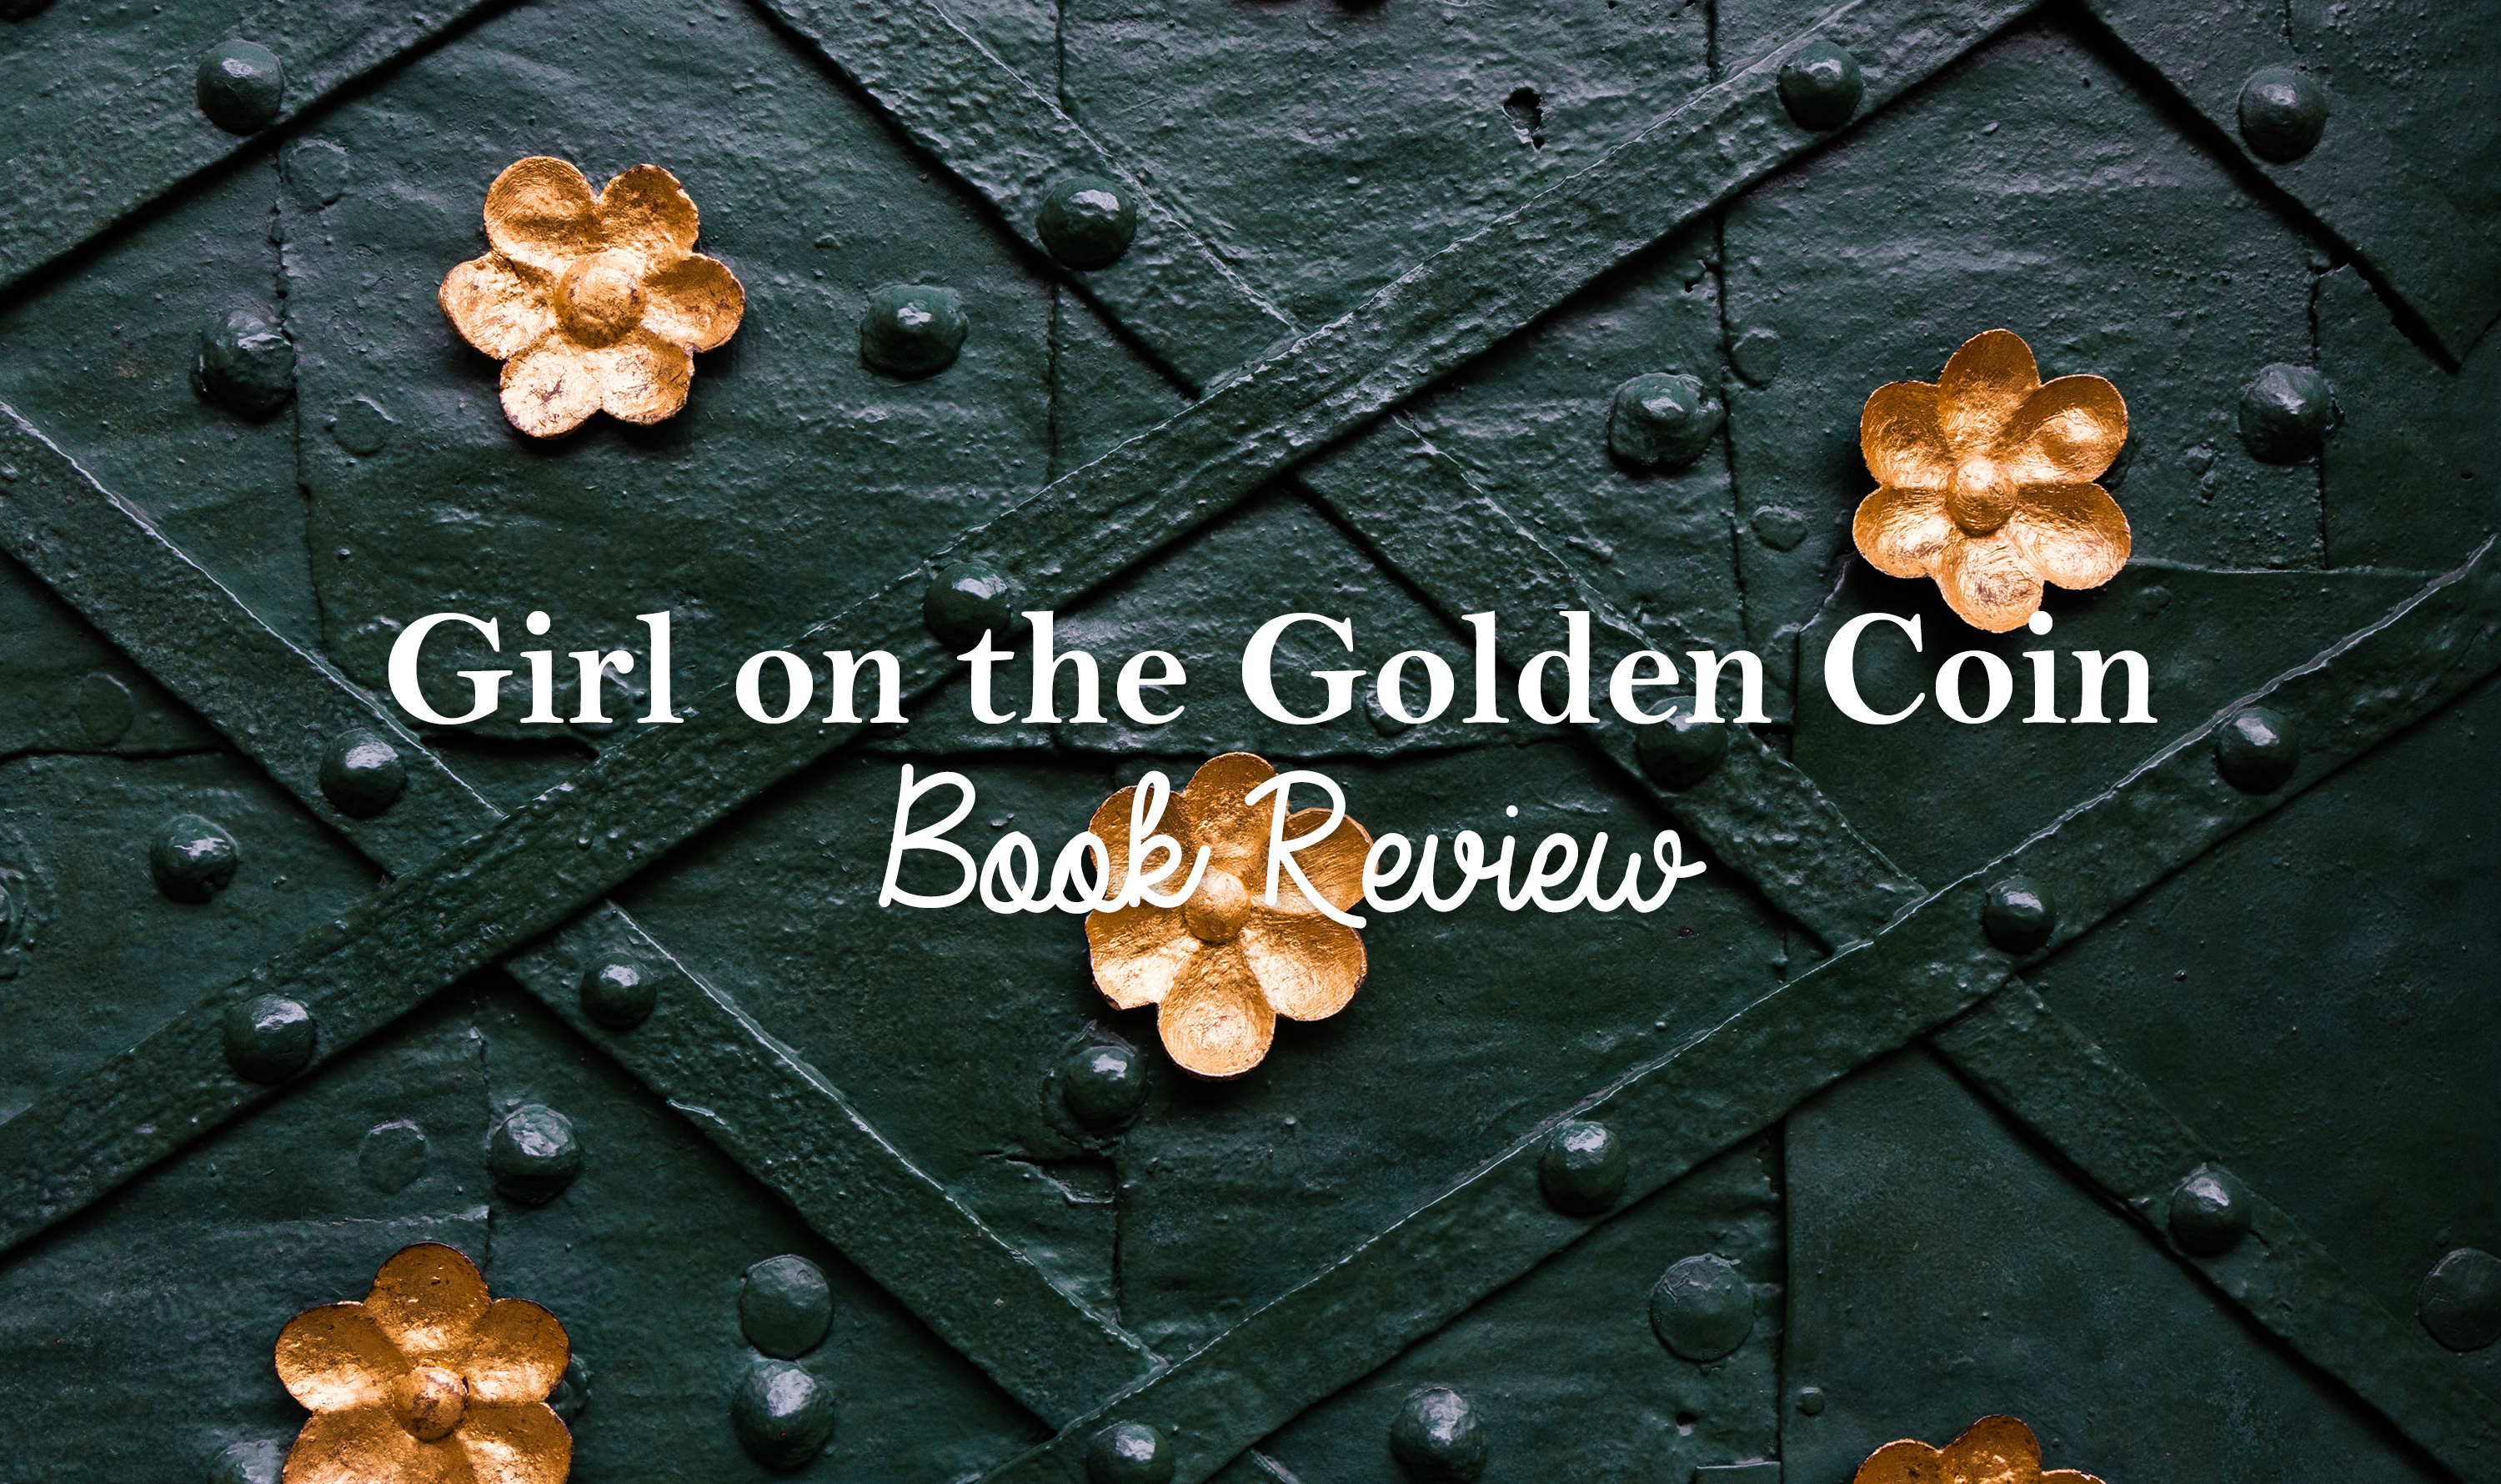 Book Review: Girl on the Golden Coin